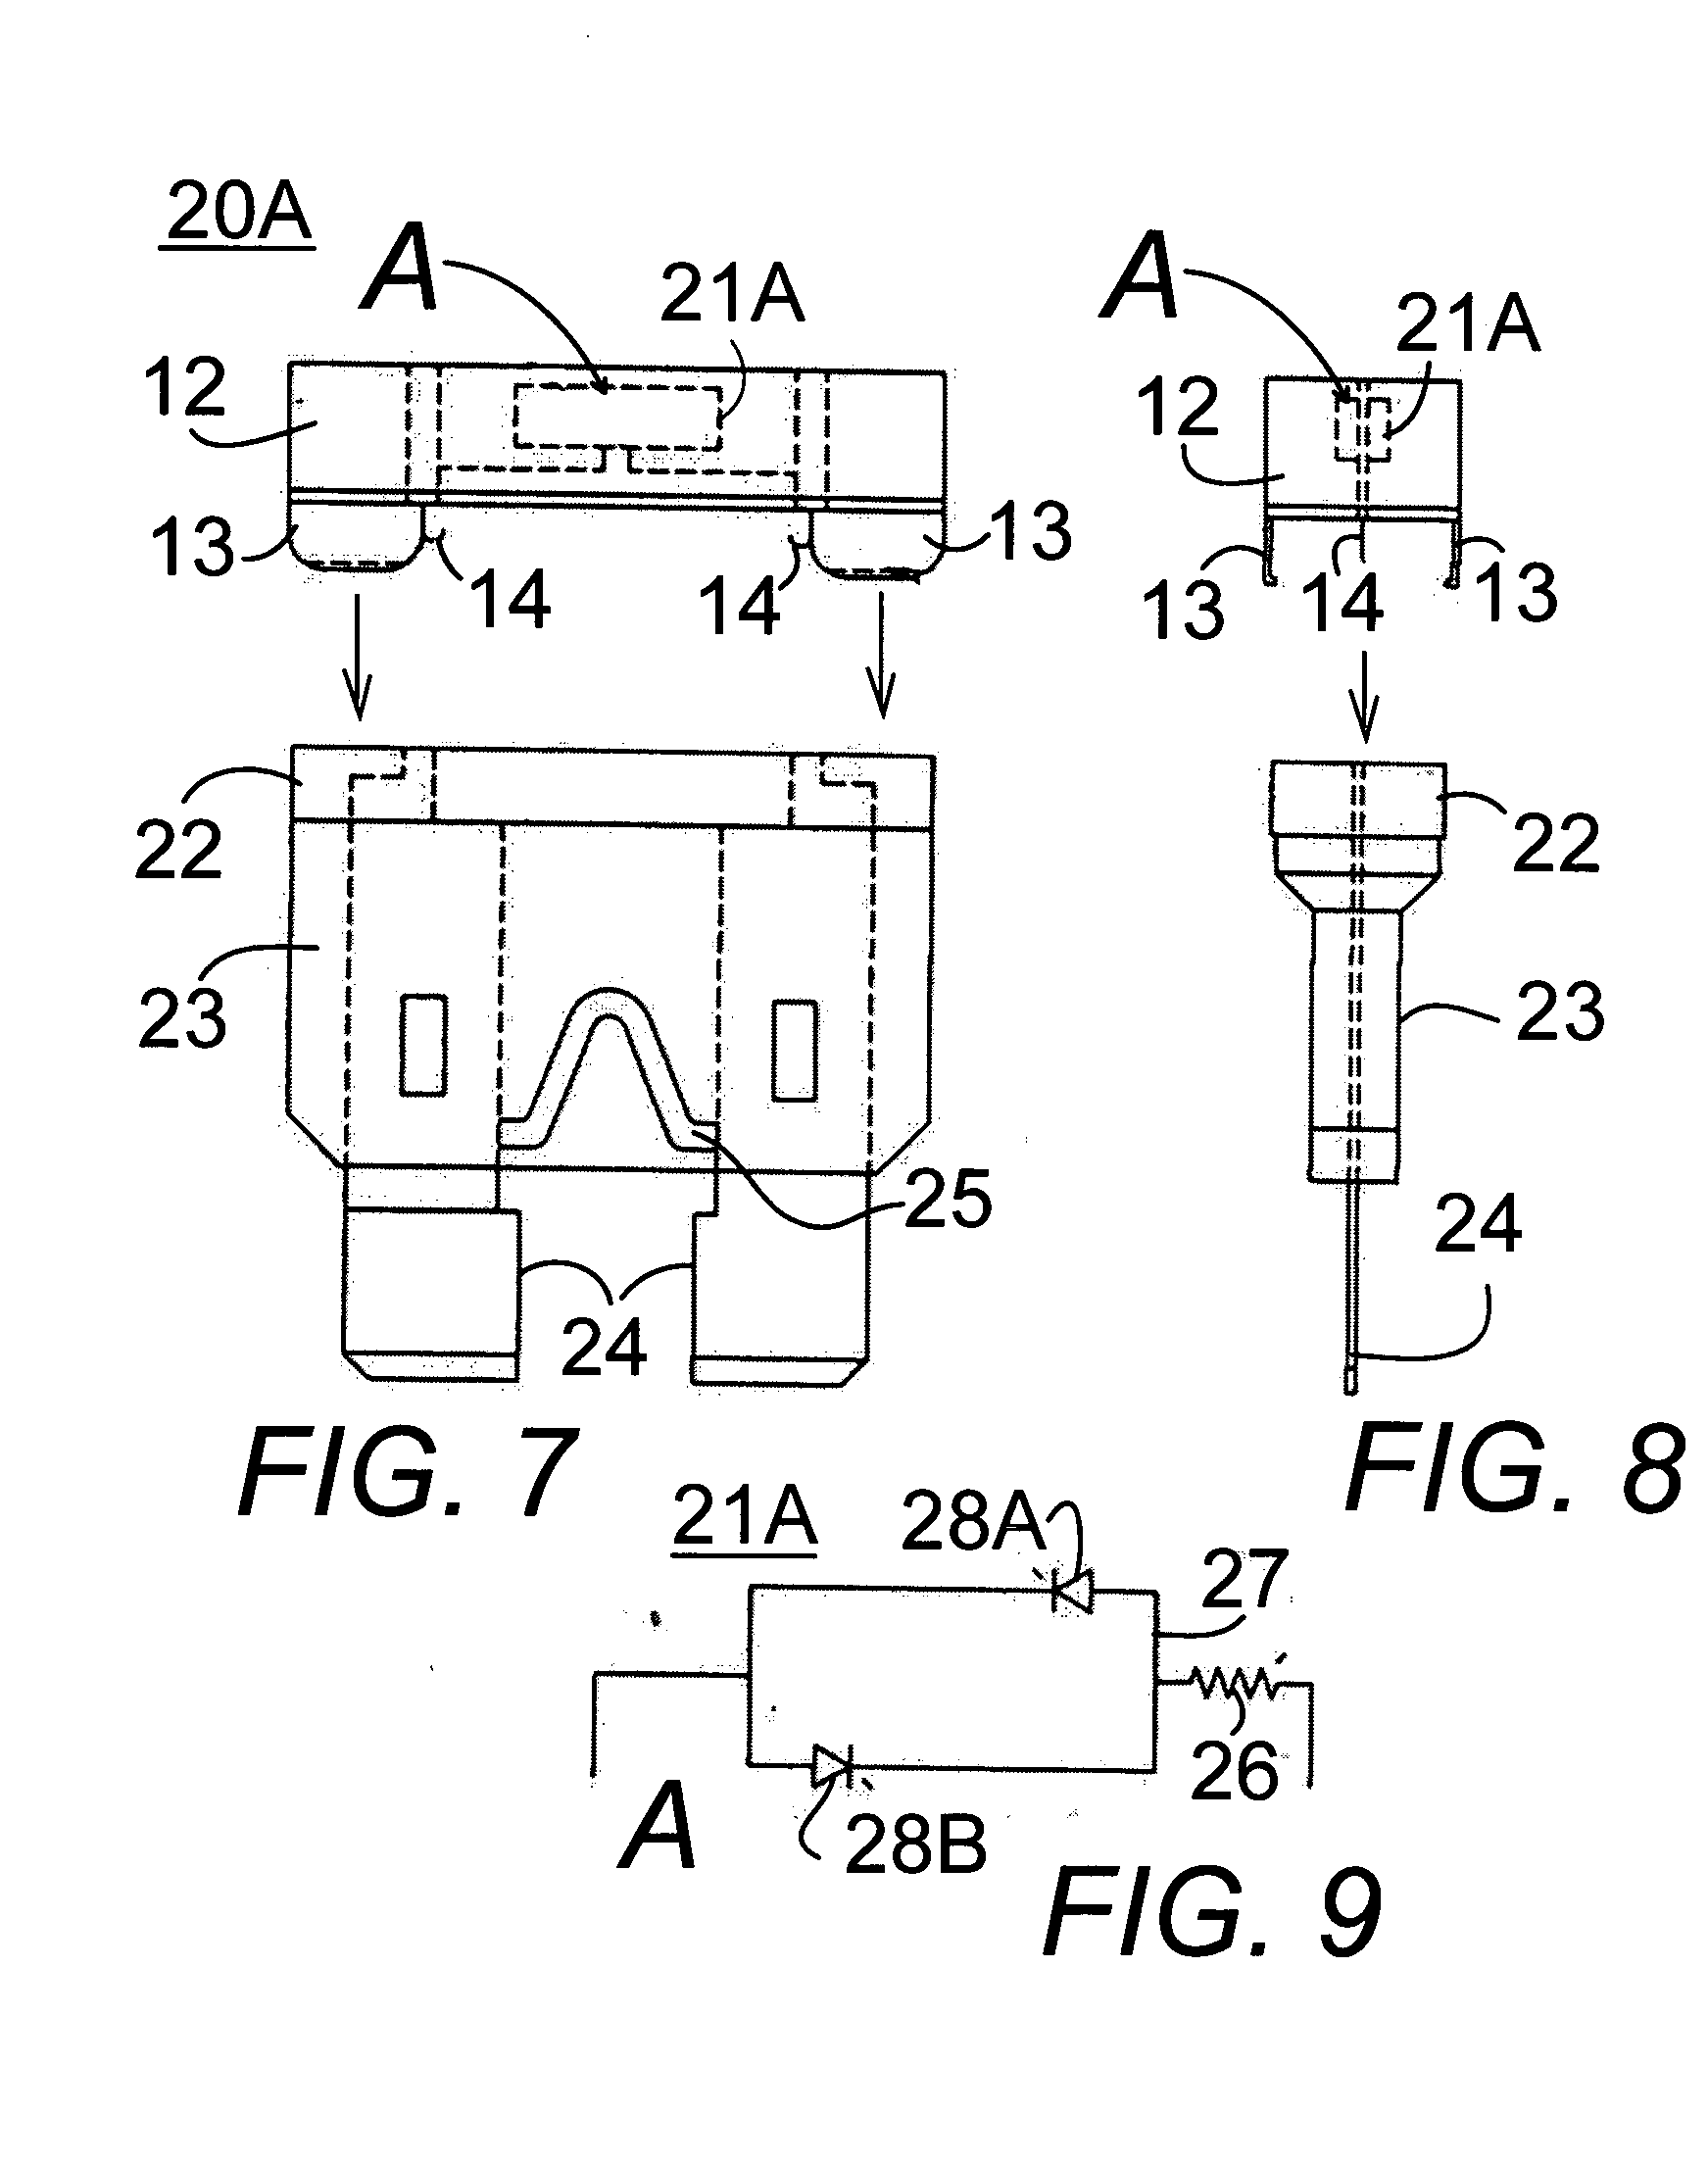 Brevet Us20060017540 Fuse Blow Out Dual Led Indicator Google Brevets Light Bulb Patente On Wire Battery Circuit Patent Drawing